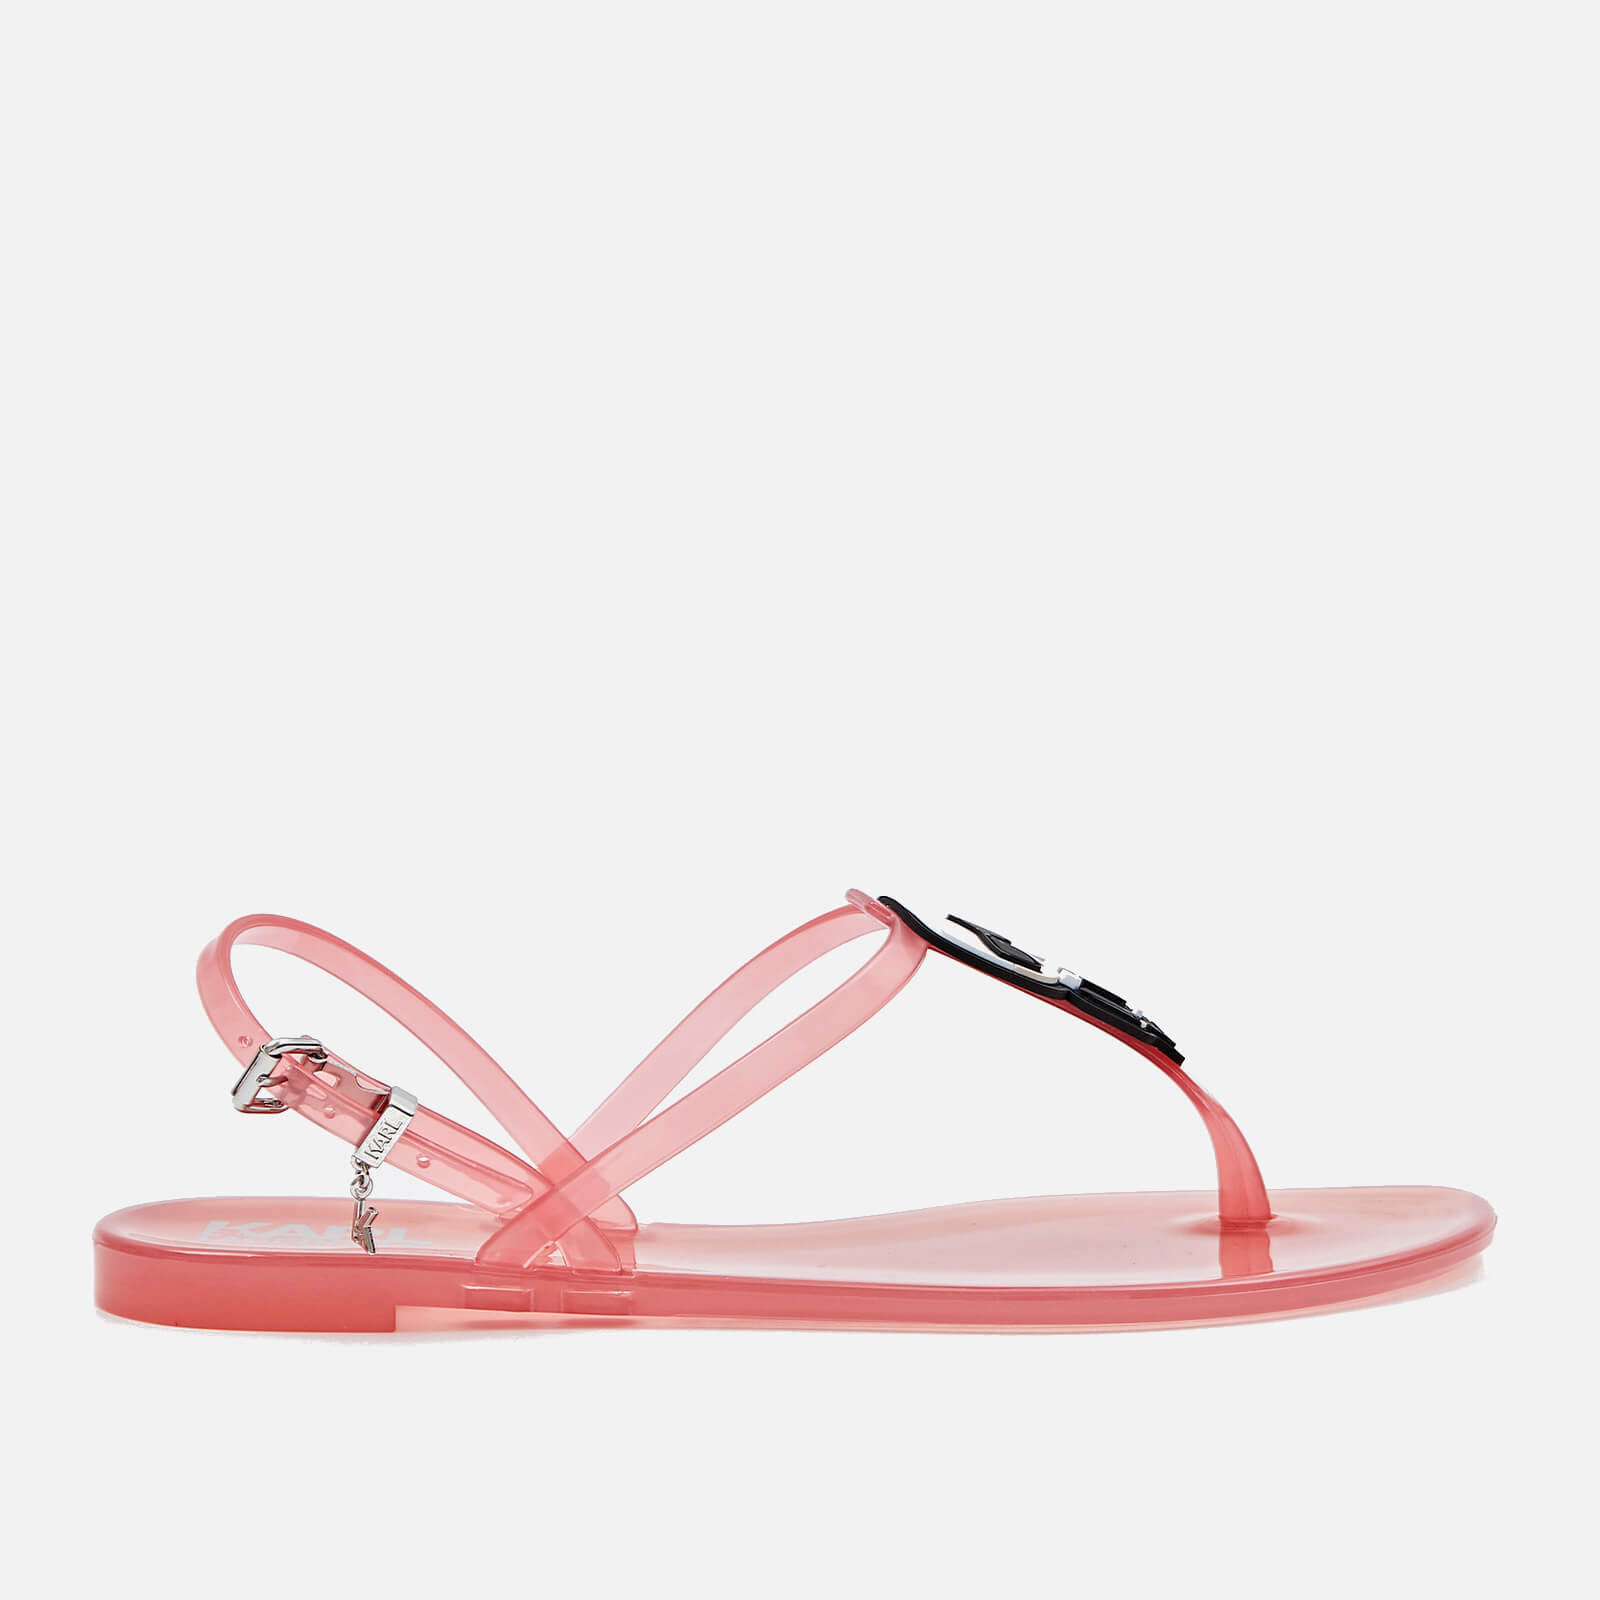 Karl Lagerfeld Womens Jelly Ikonic Karl Sandals Light Pink Uk 5